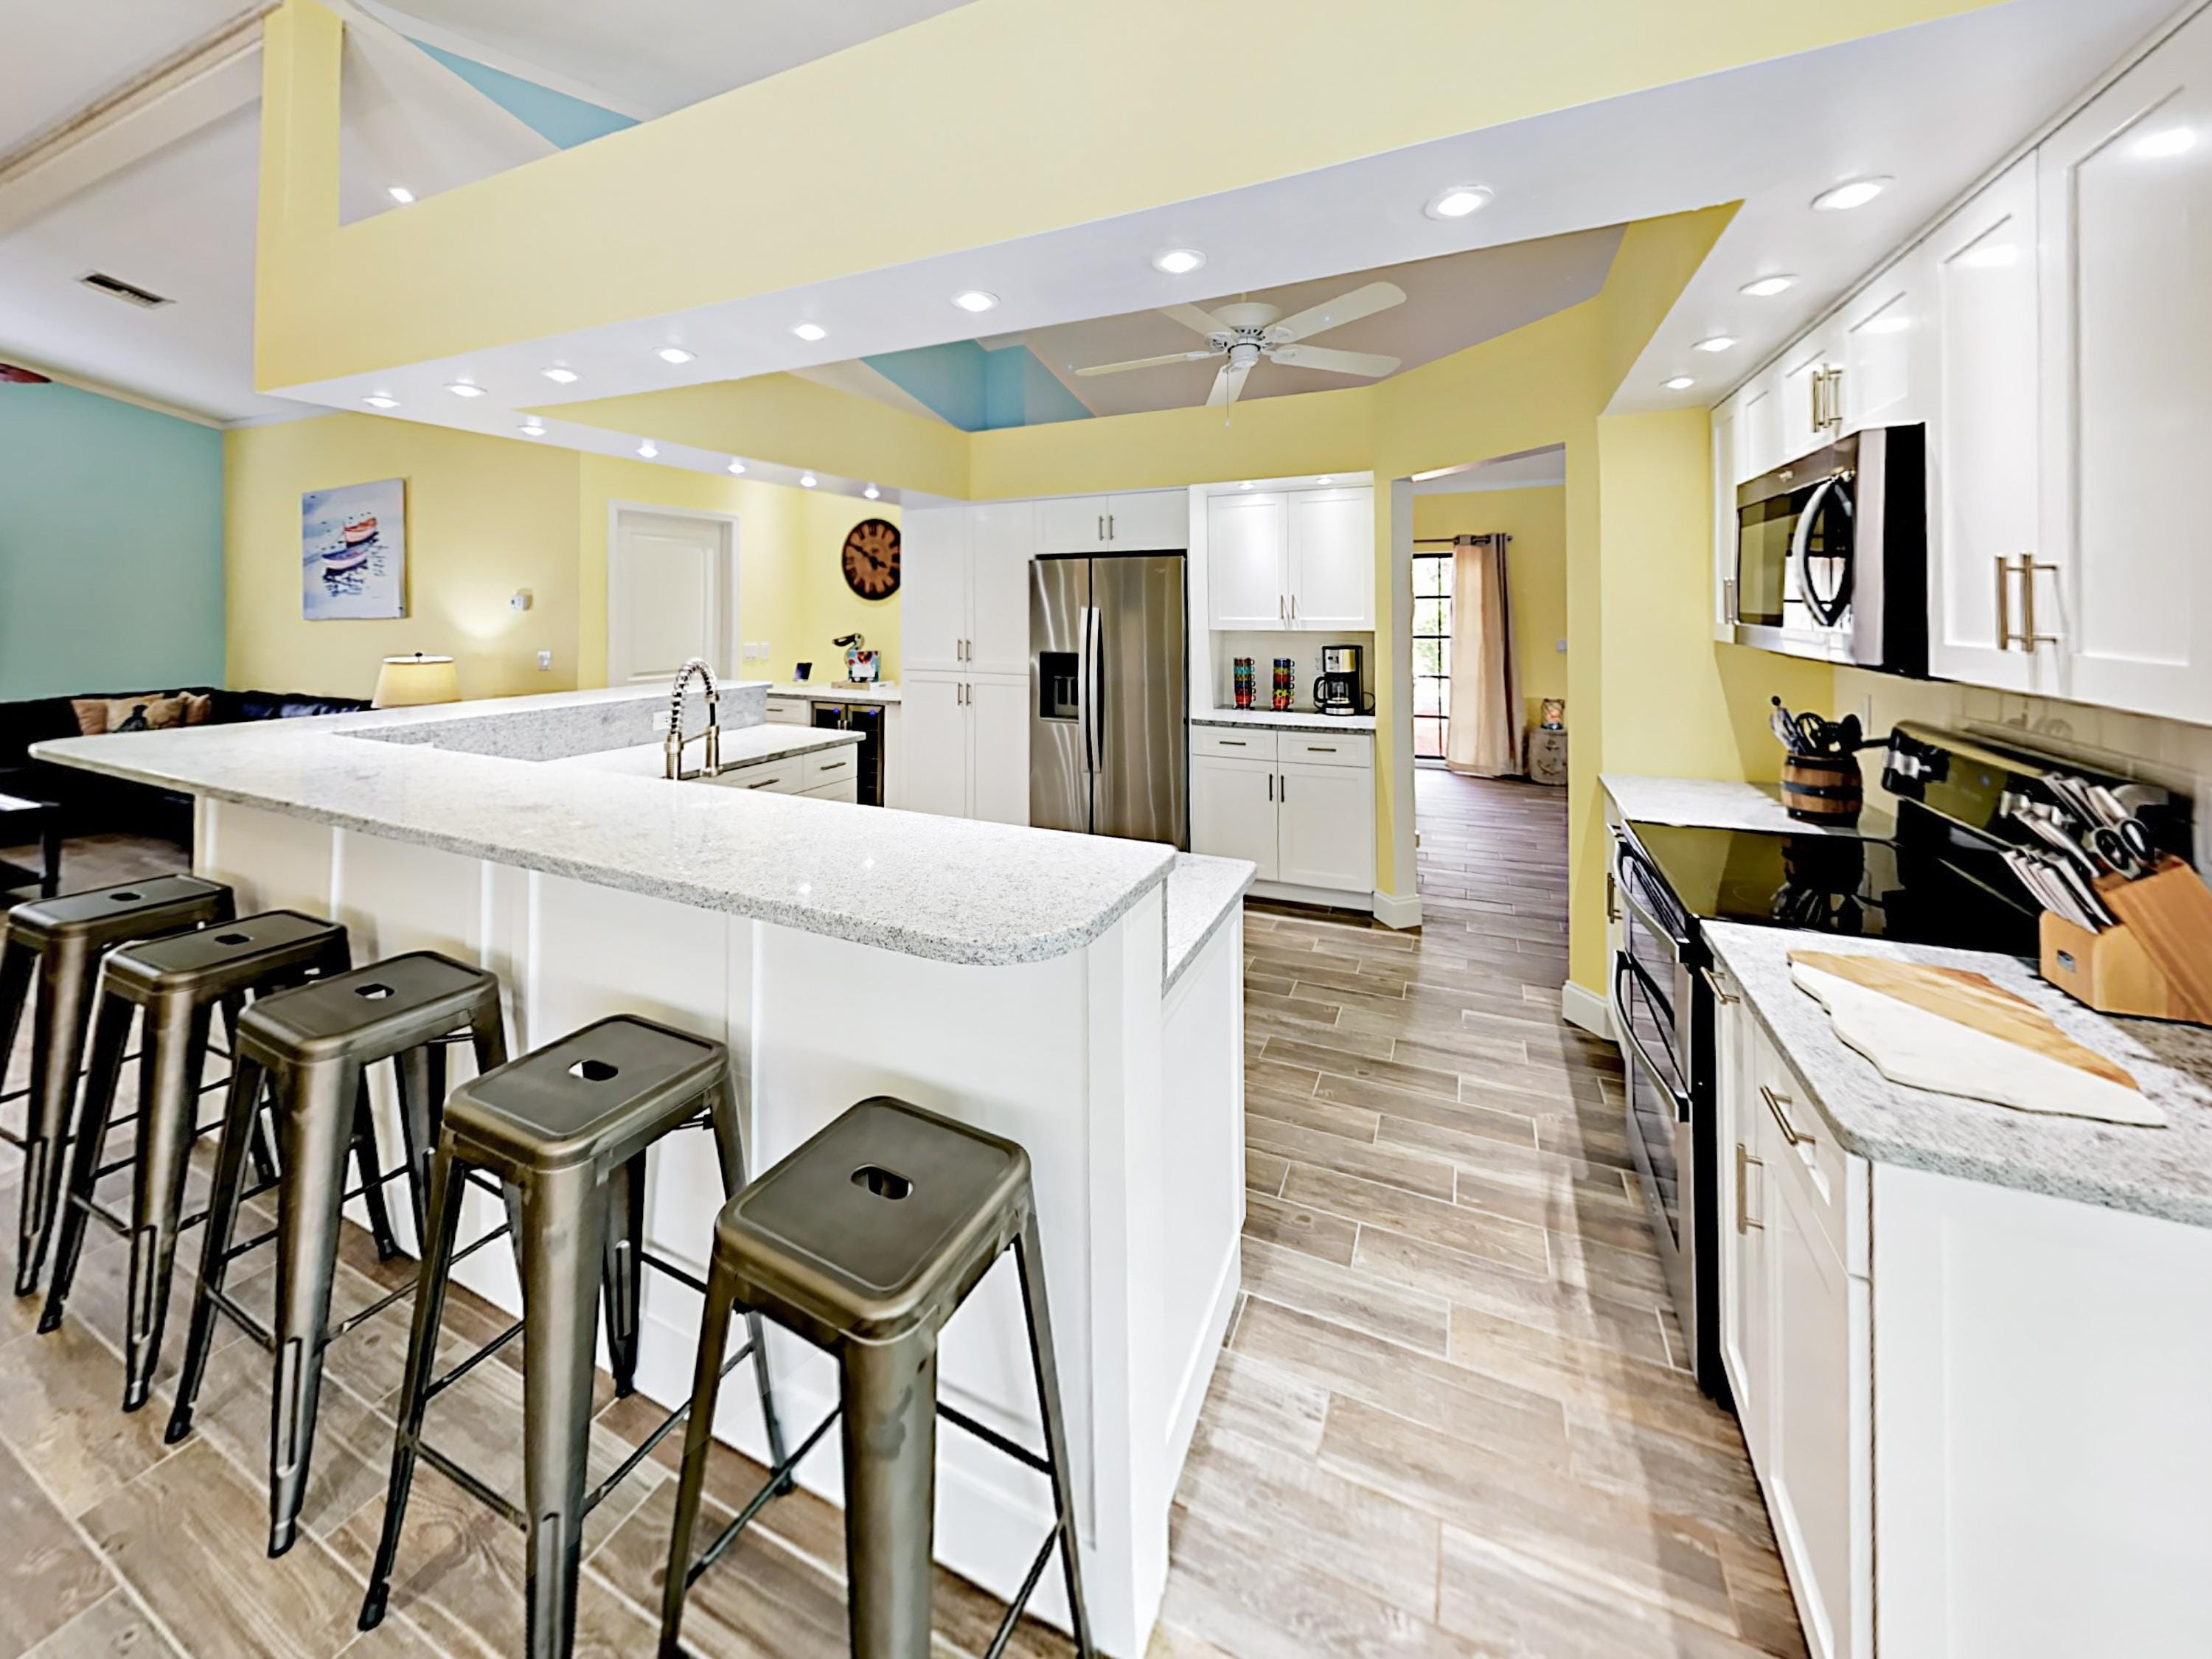 Whip up meals in the kitchen, outfitted with custom granite countertops and stainless steel Whirlpool appliances.